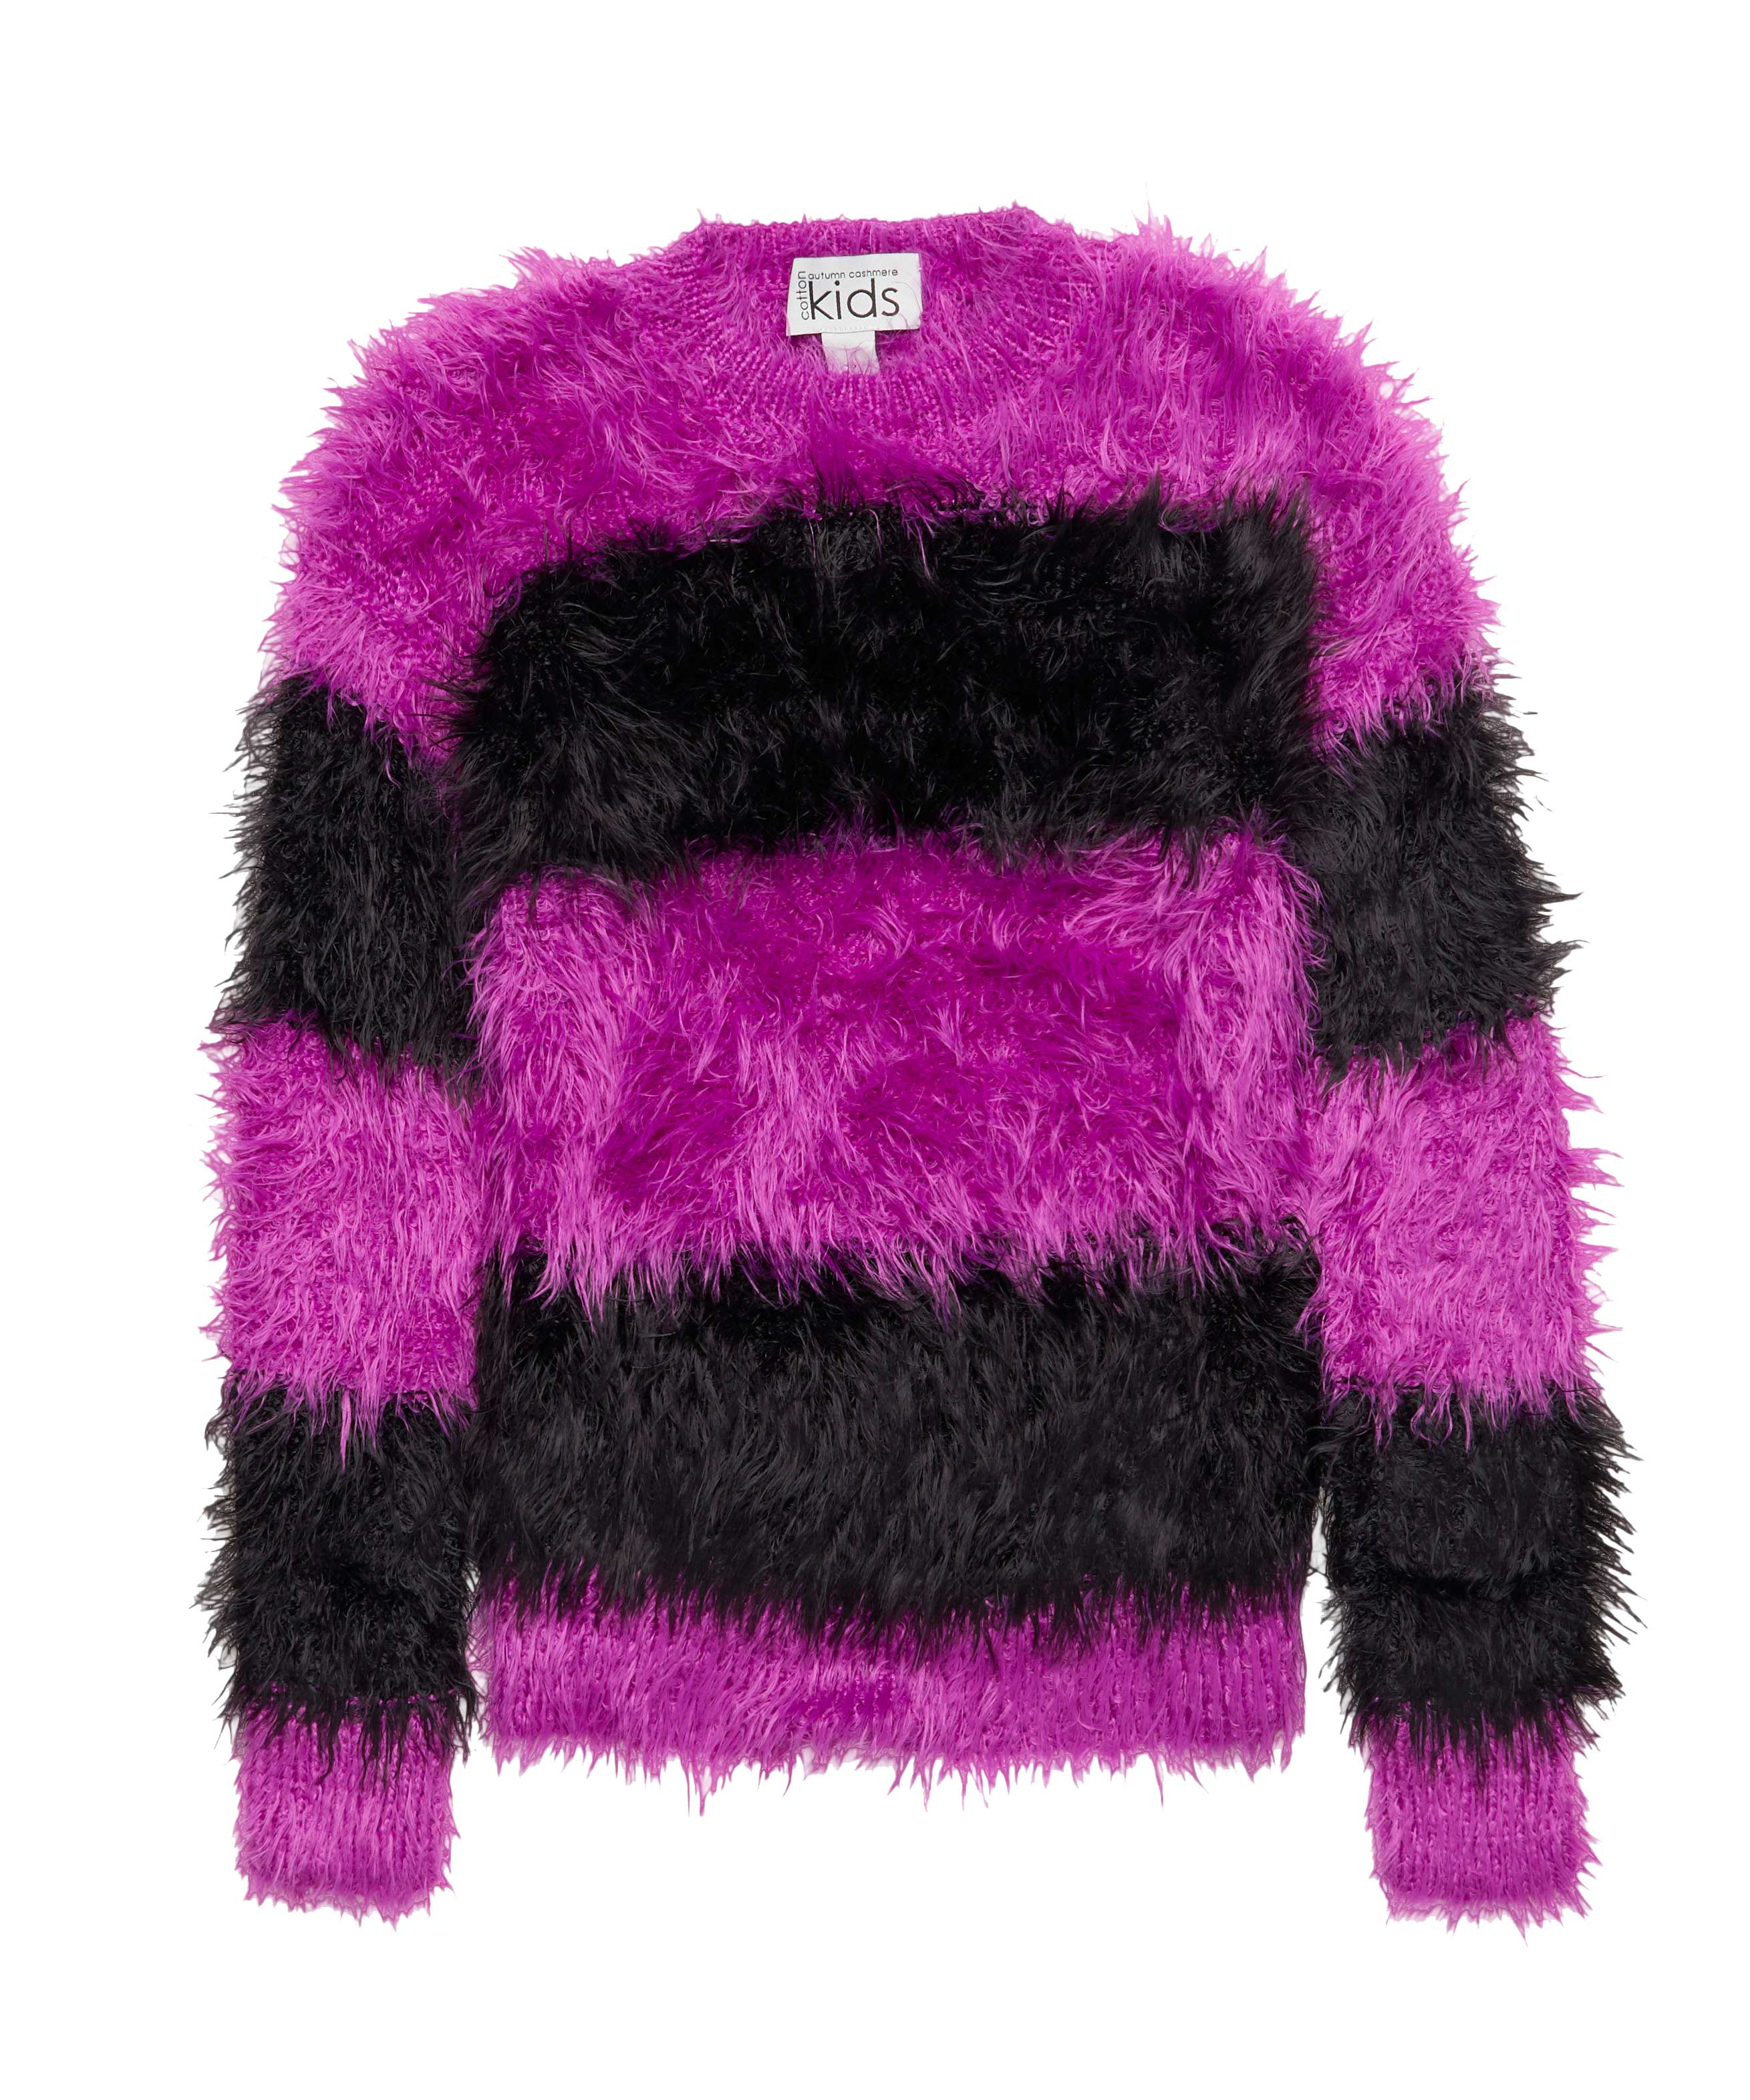 Fuzzy Rugby Sweater